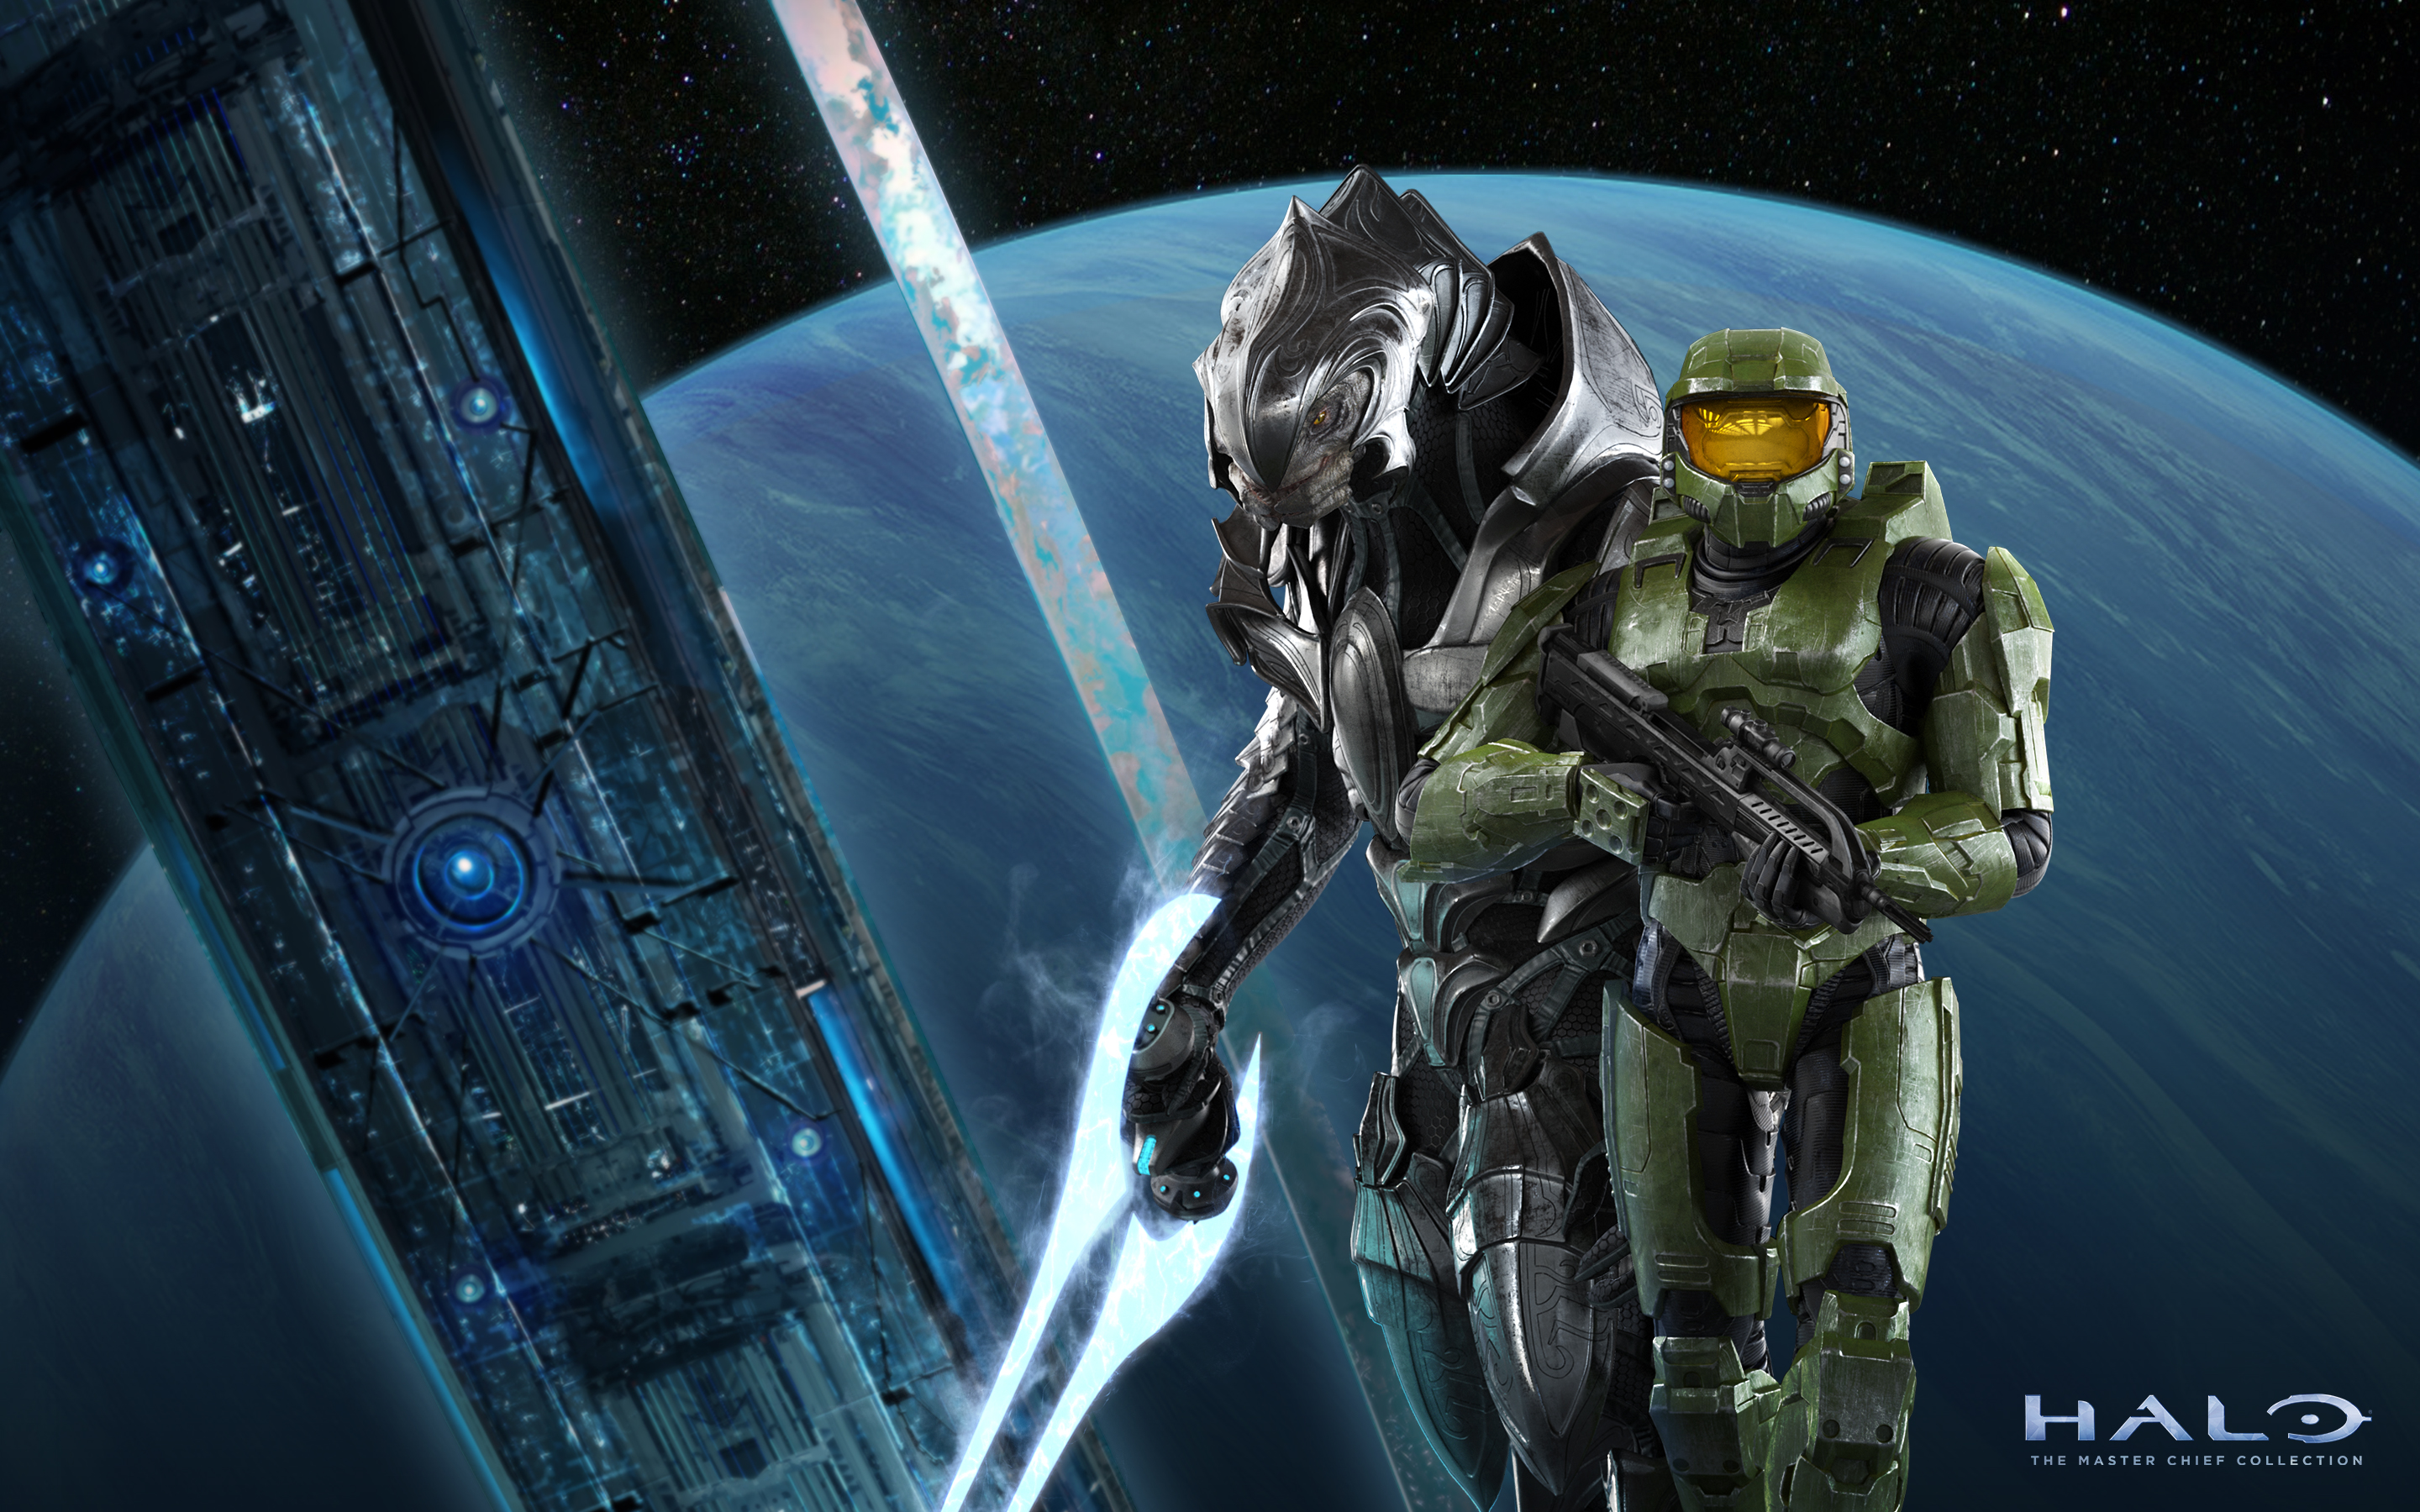 halo 2 anniversary mobile and screen wallpapers